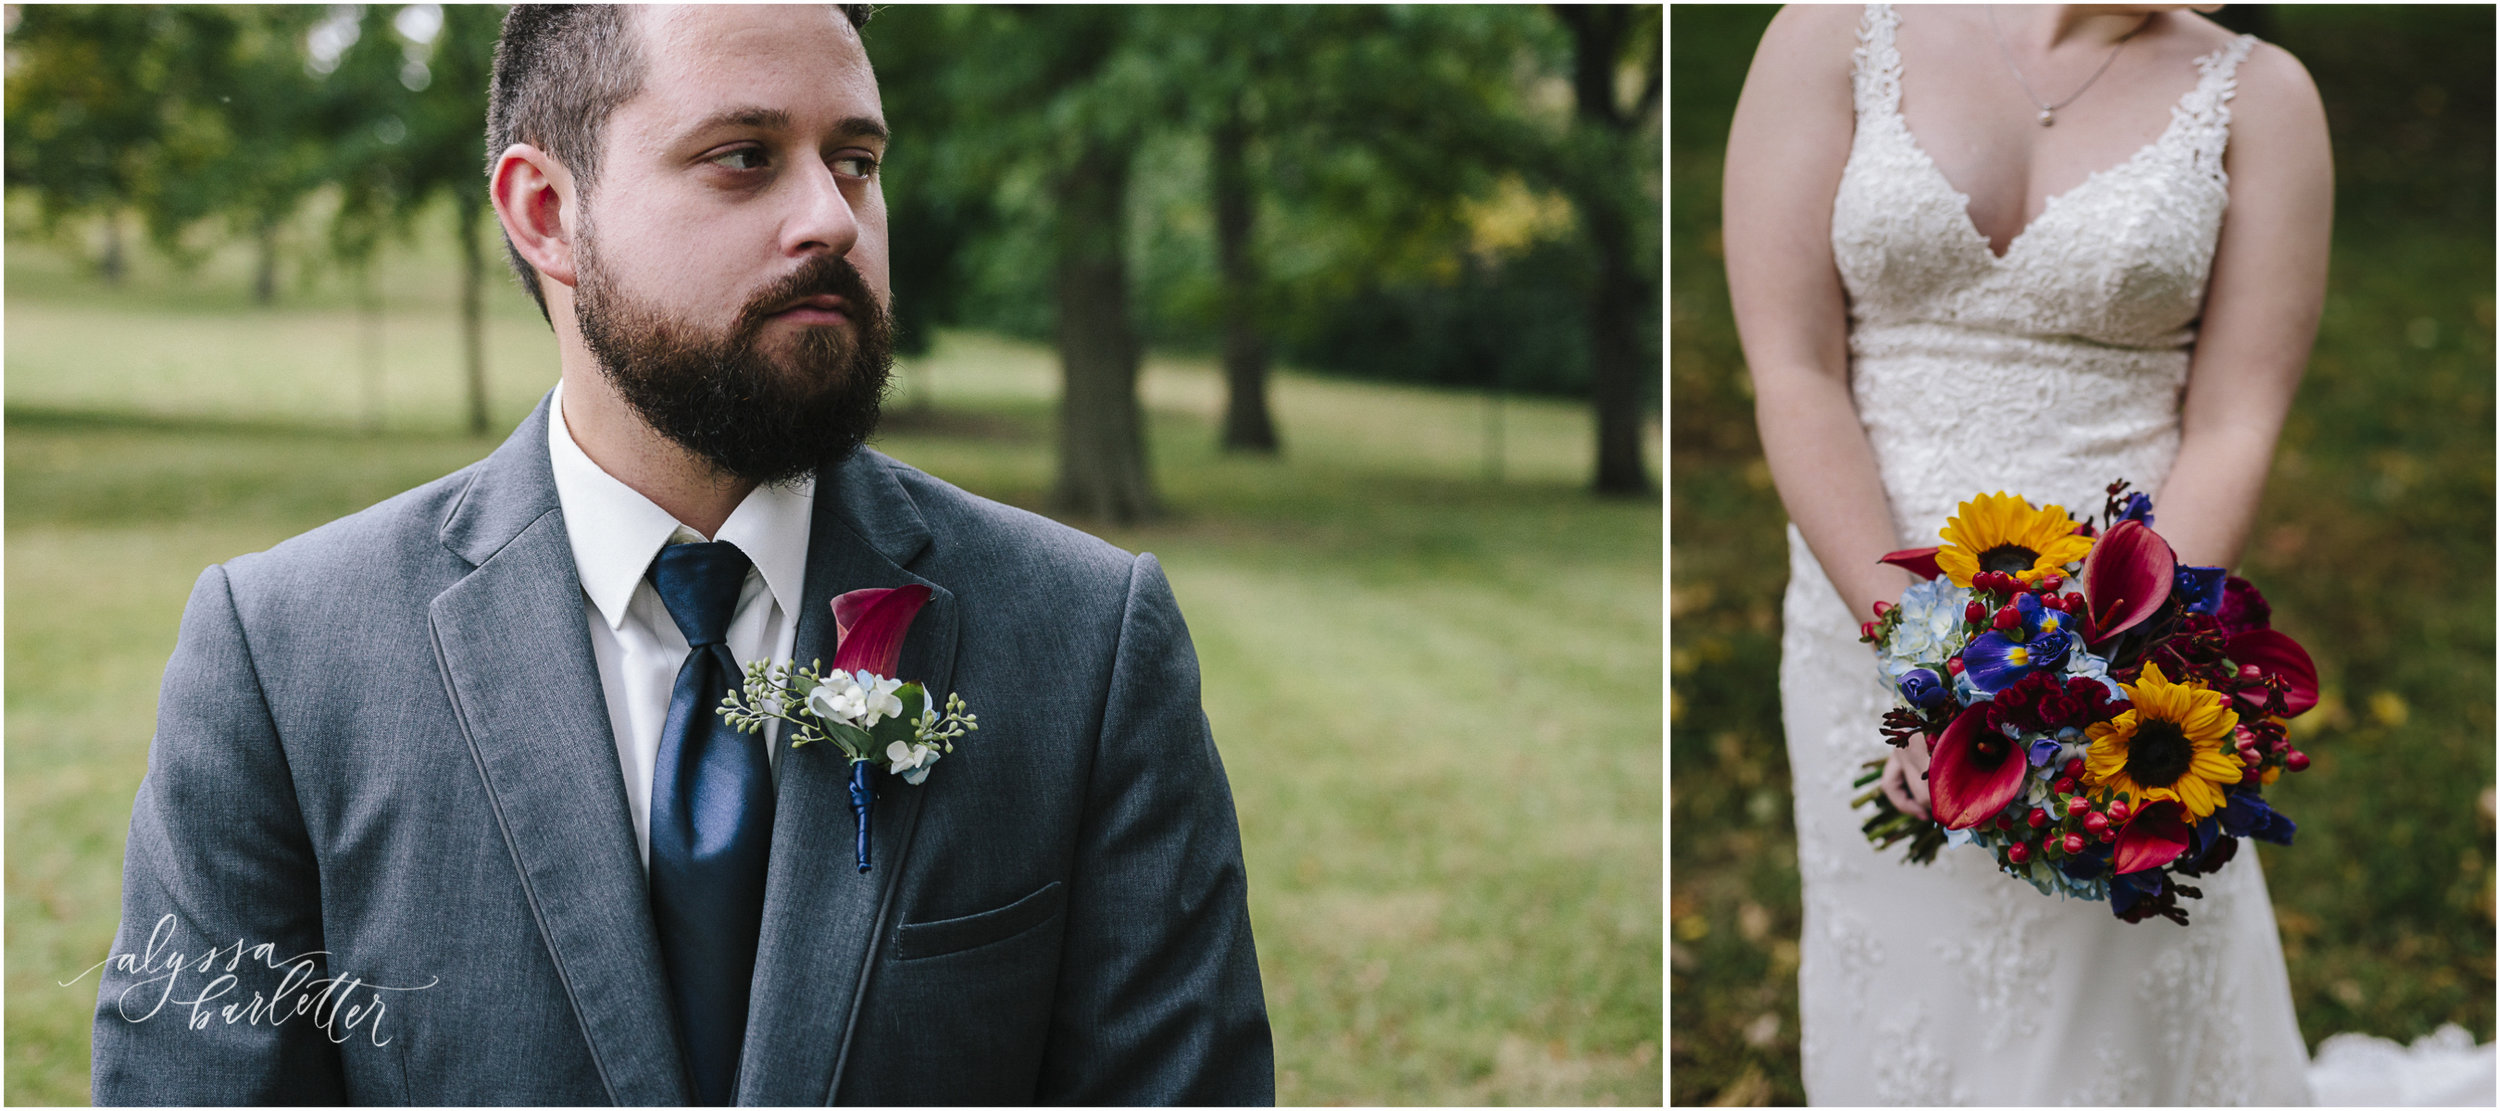 alyssa barletter photography wedding liberty missouri hipster quirky alex and shawn-1-15.jpg